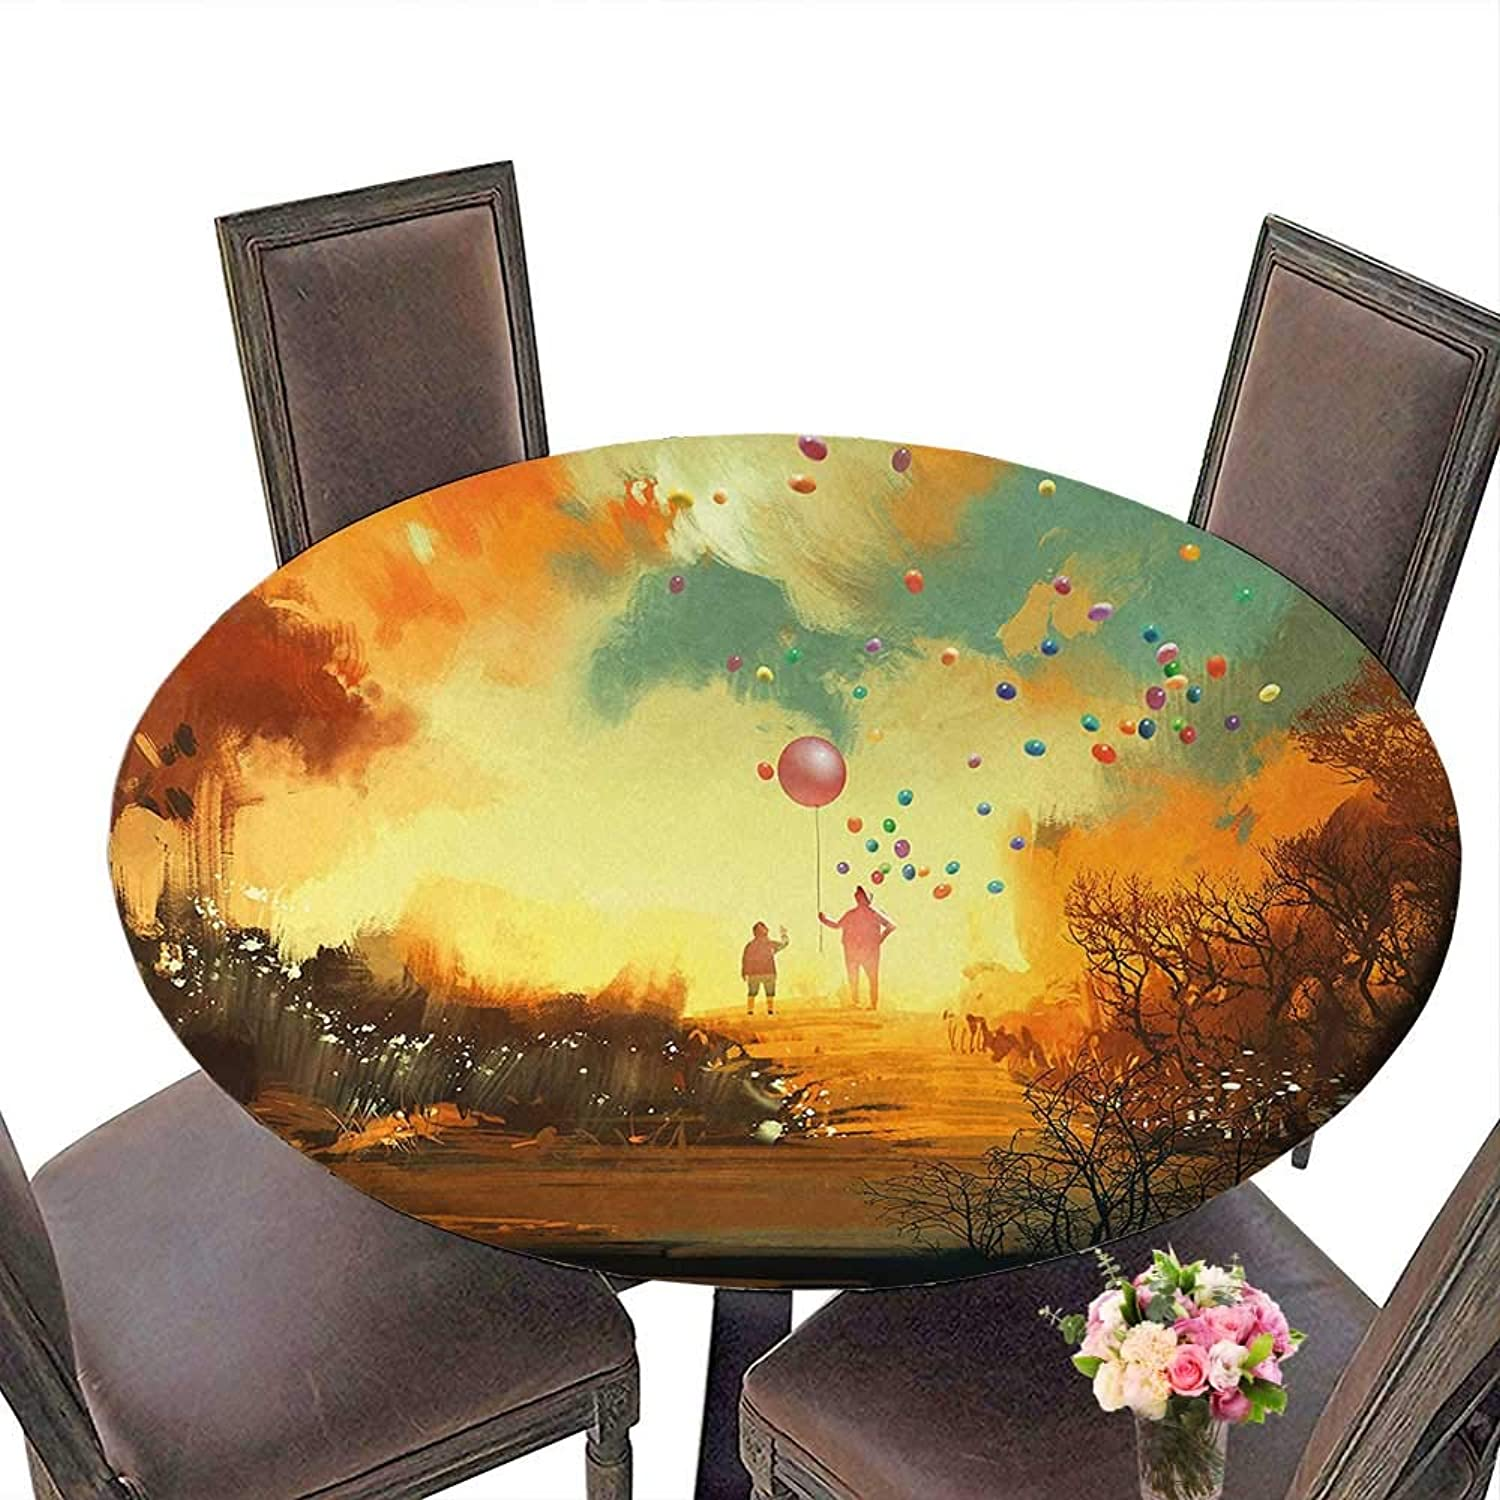 RoundTable Cloth for Foot Table in Washable Polyester(Elastic Edge) suitable for all occasions, (72.5 round)Fantasy Silhouette of Little Boy and Wizard with Balloons Forest Print Marigold Yellow Choc